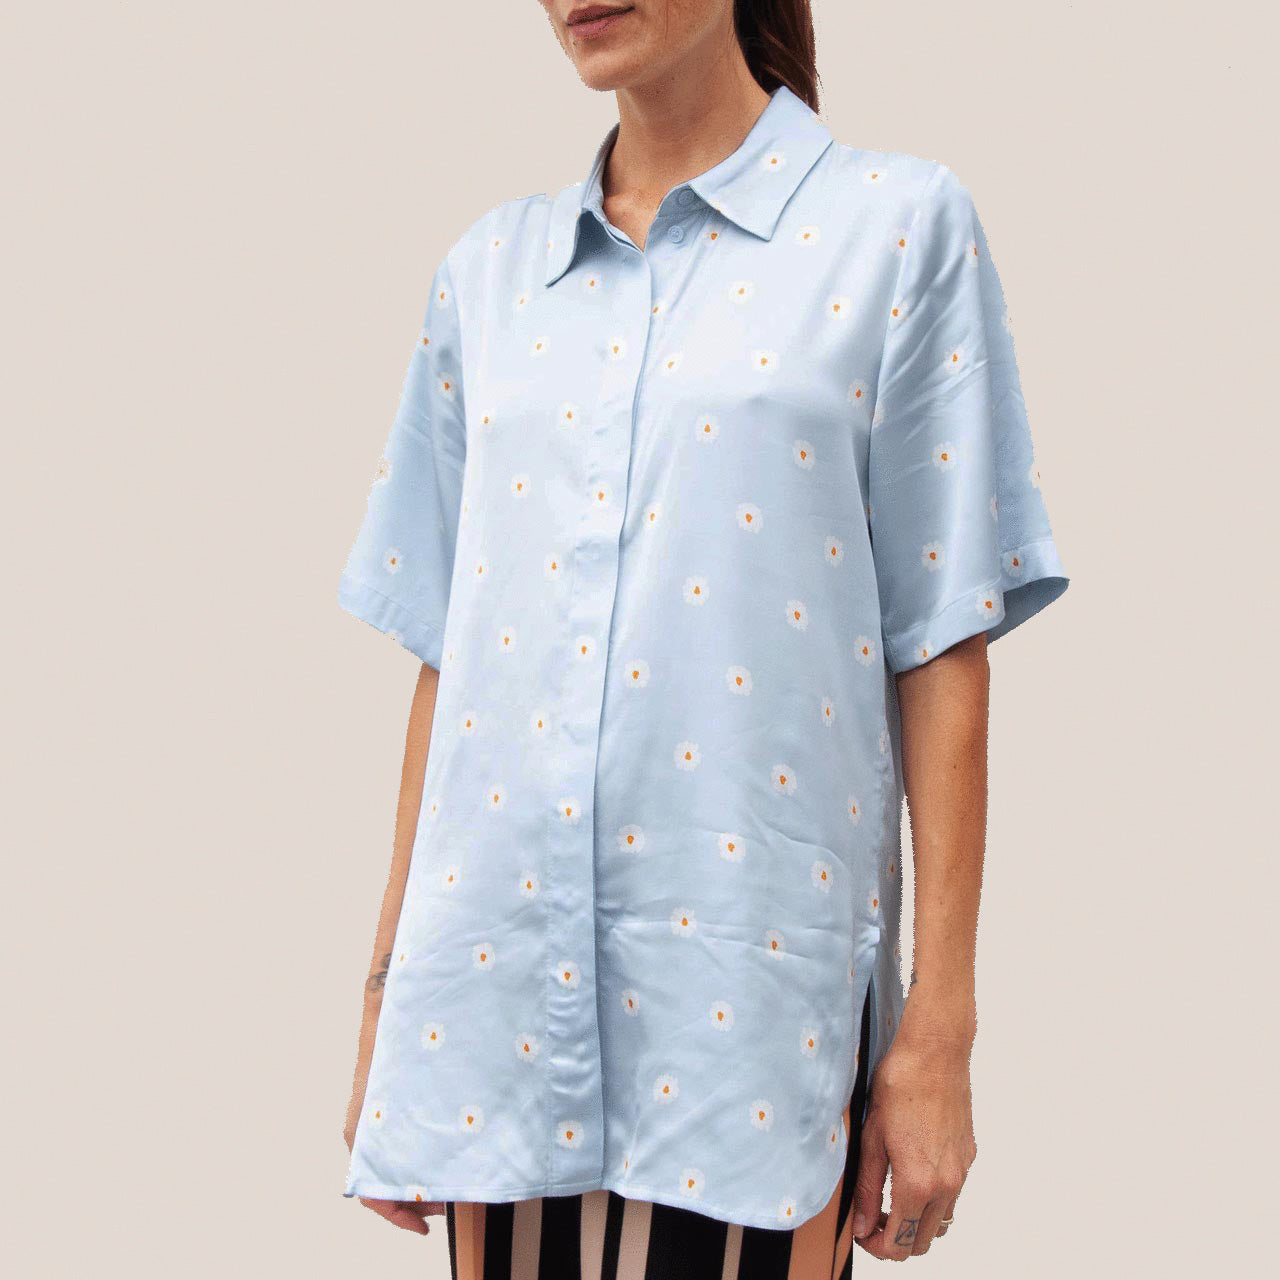 Stine Goya - Zoey Button Down, front view, available at LCD.